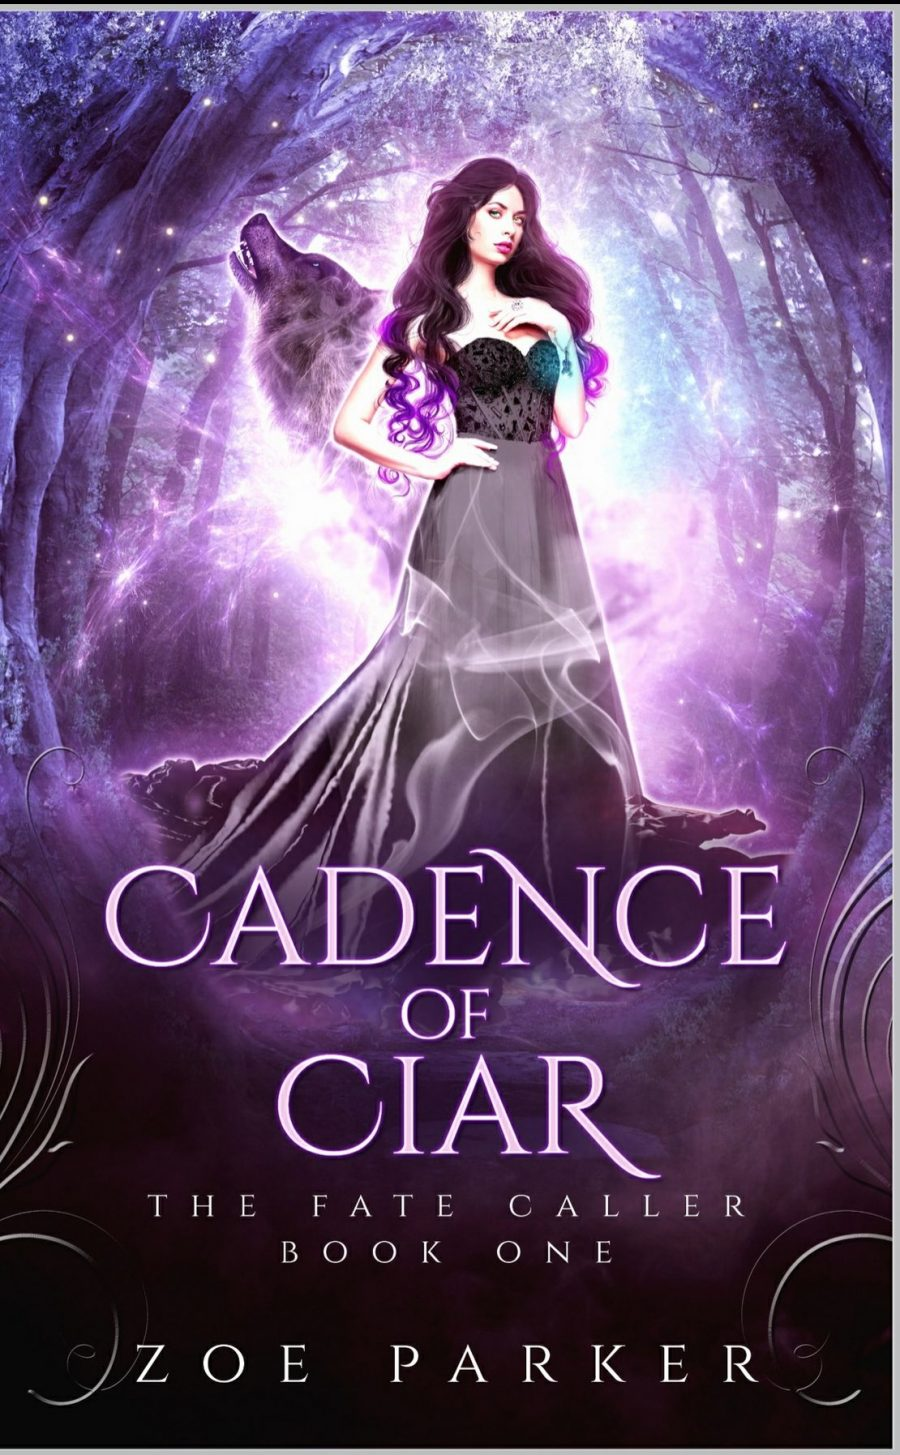 Cadence of Ciar by Zoe Parker – A Book Review